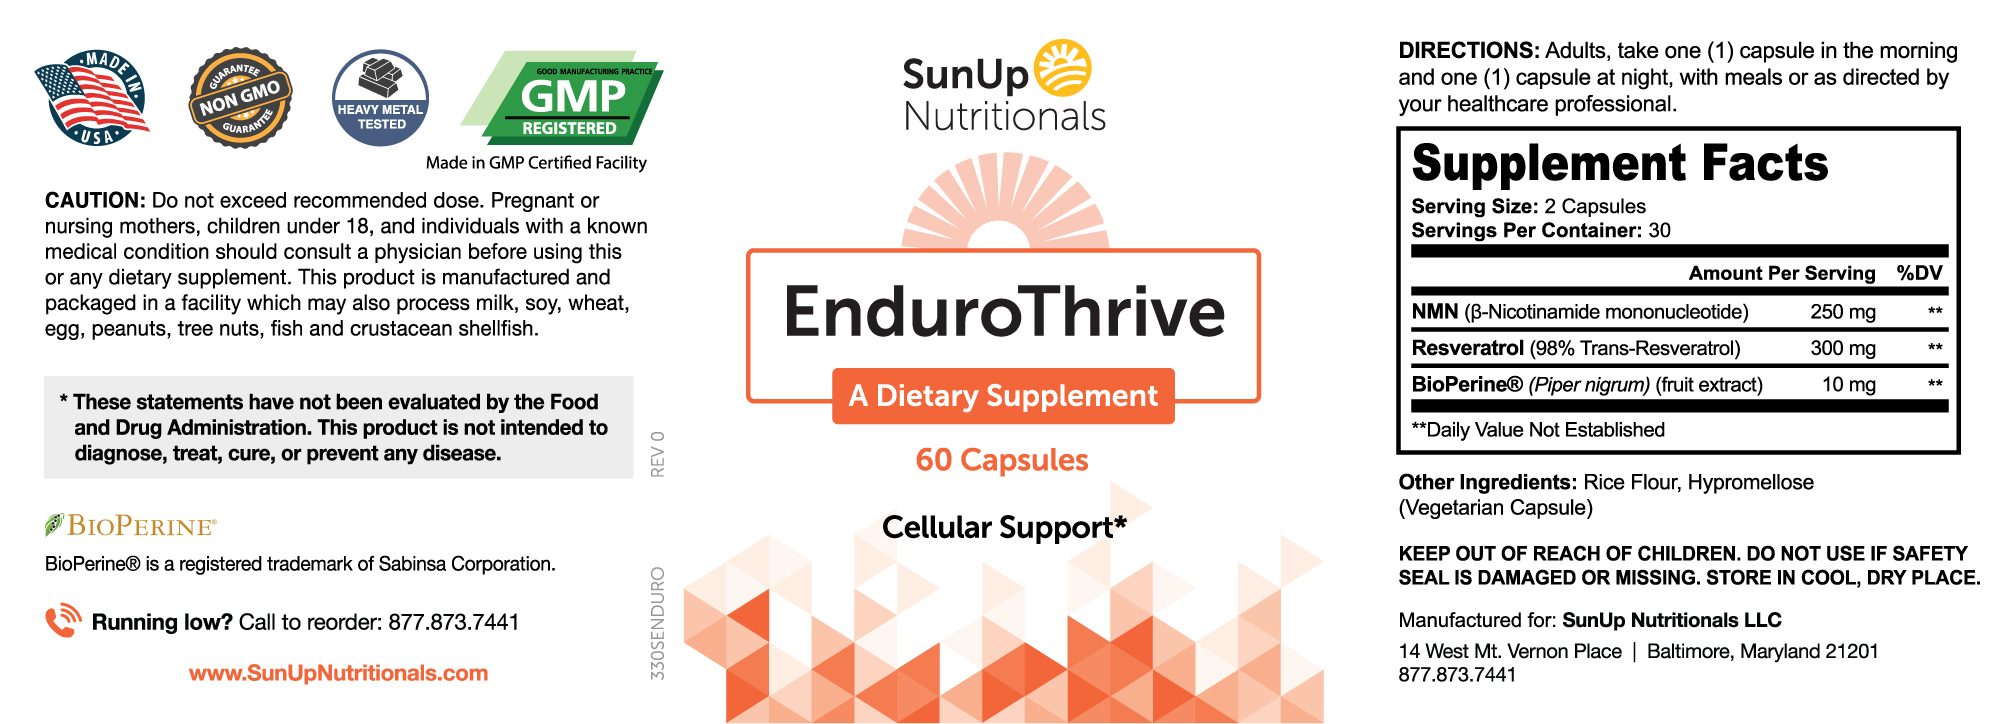 EnduroThrive Ingredients